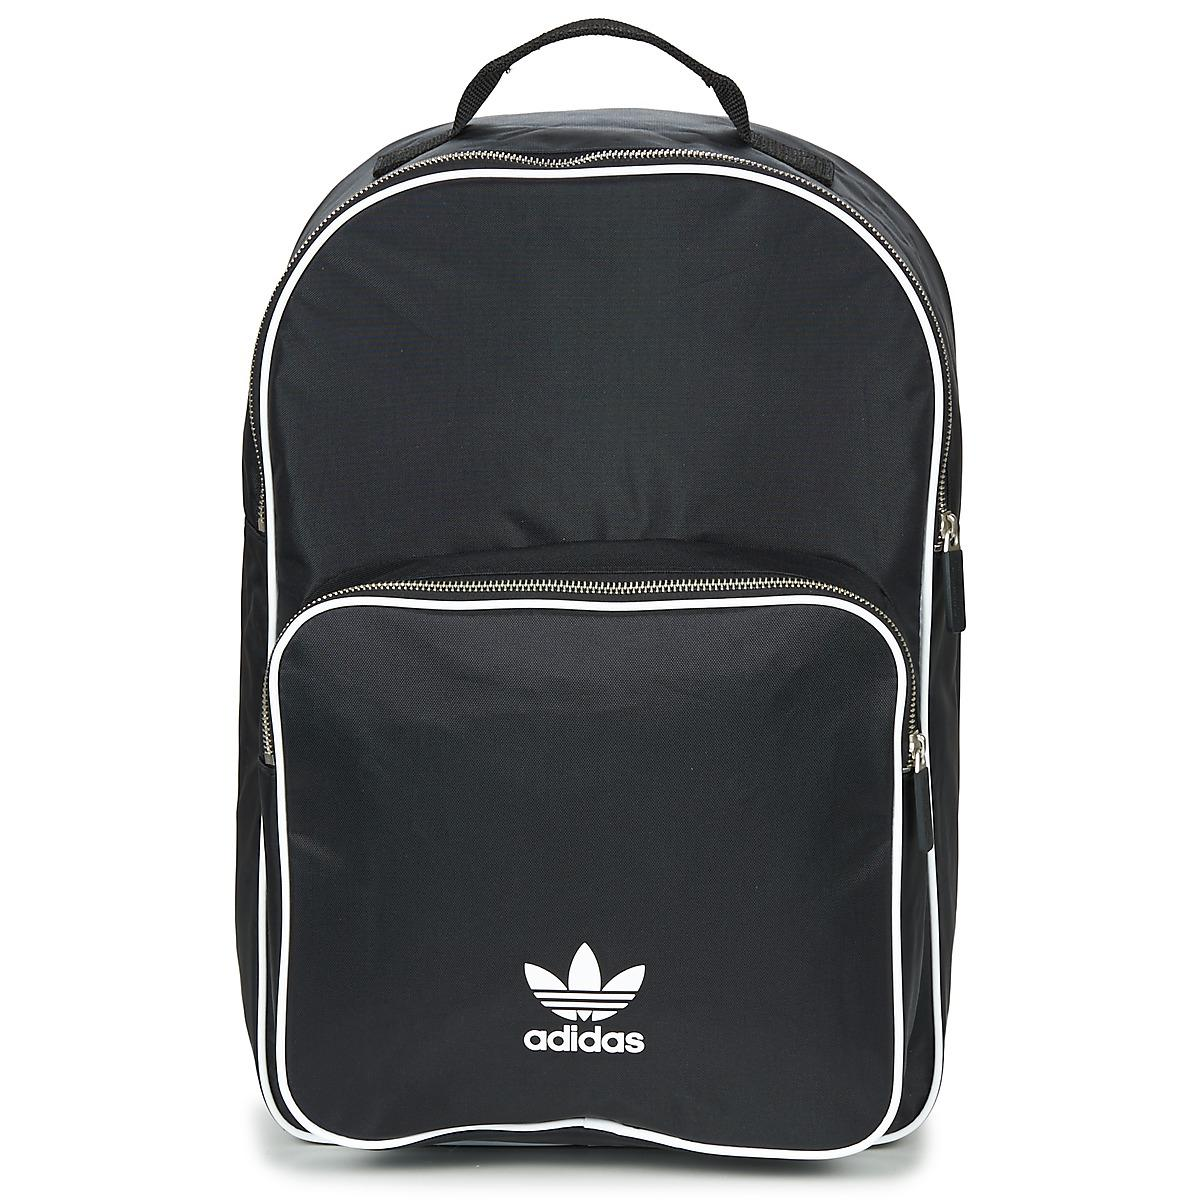 6782dfe0b3 adidas Classic Adicolor Bp Women s Backpack In Black in Black for ...